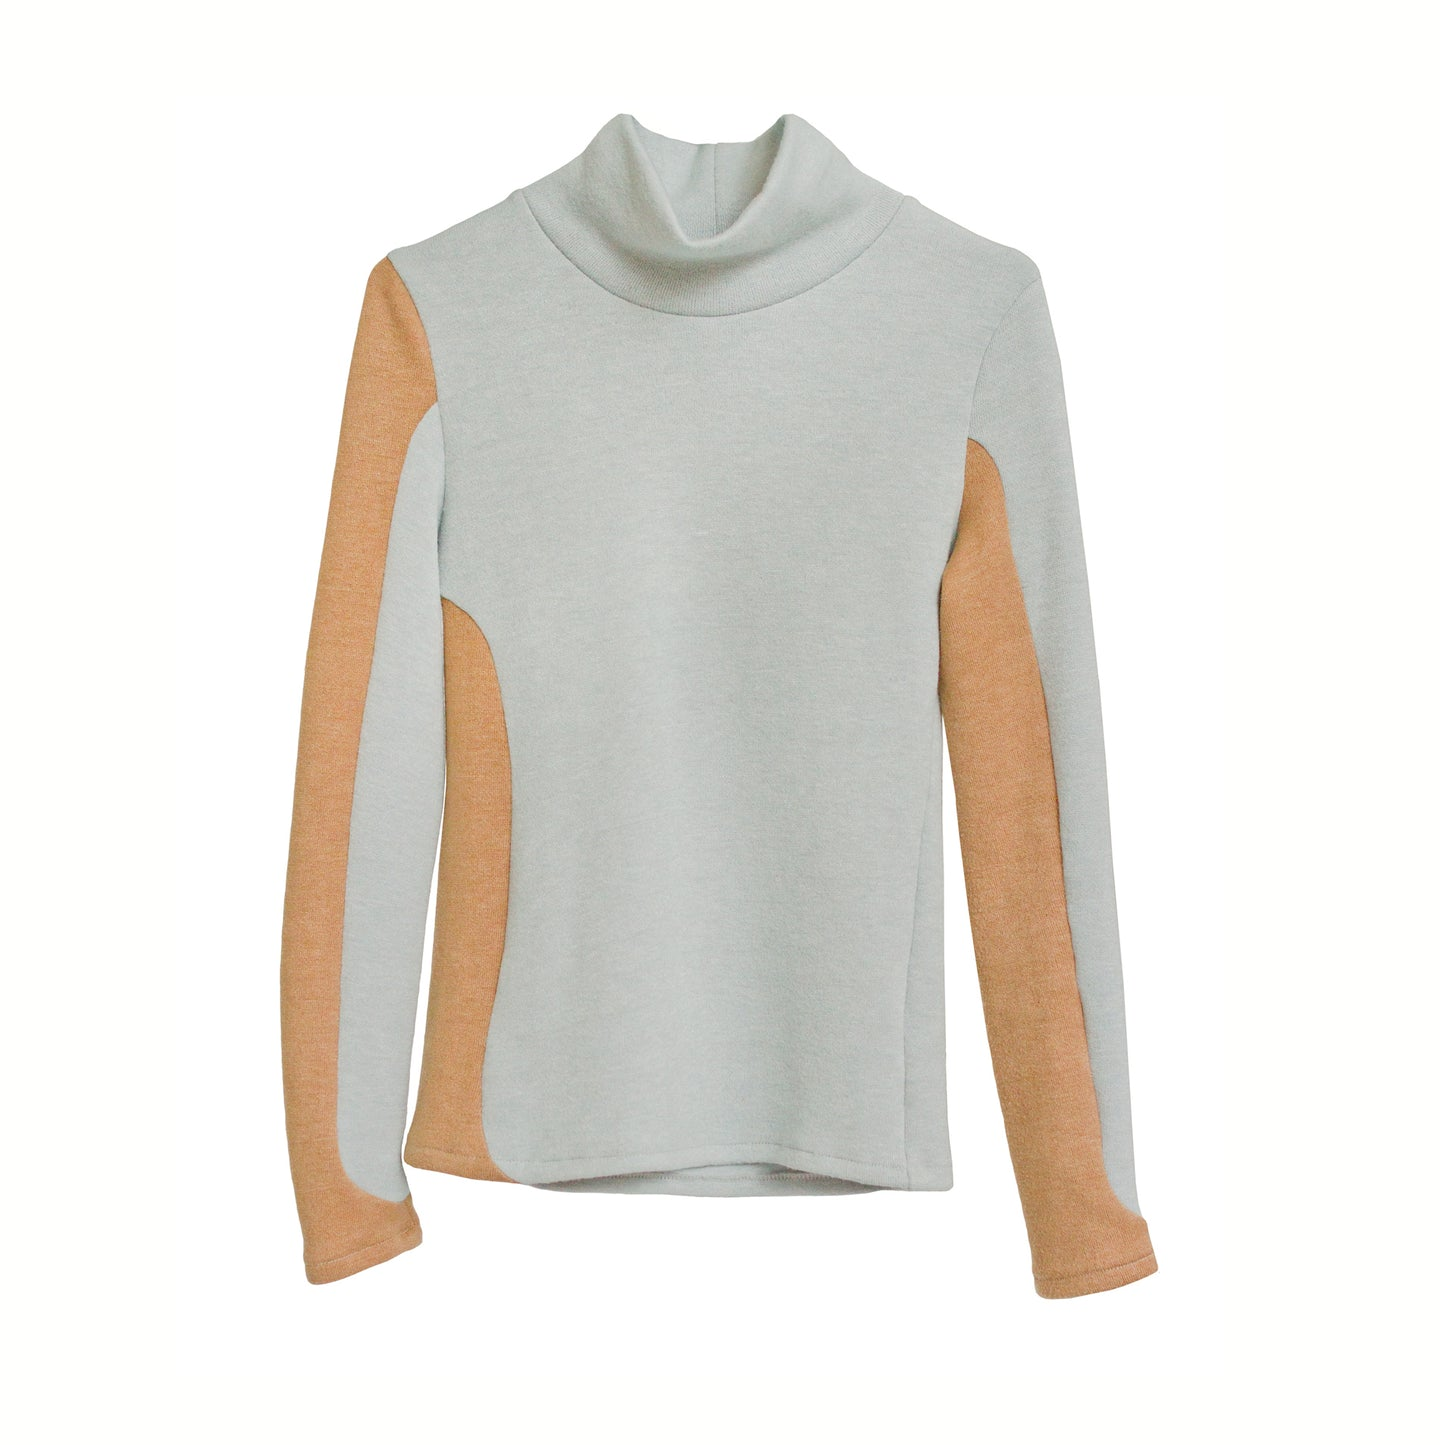 CHIAROSCURO Turtleneck GRAY